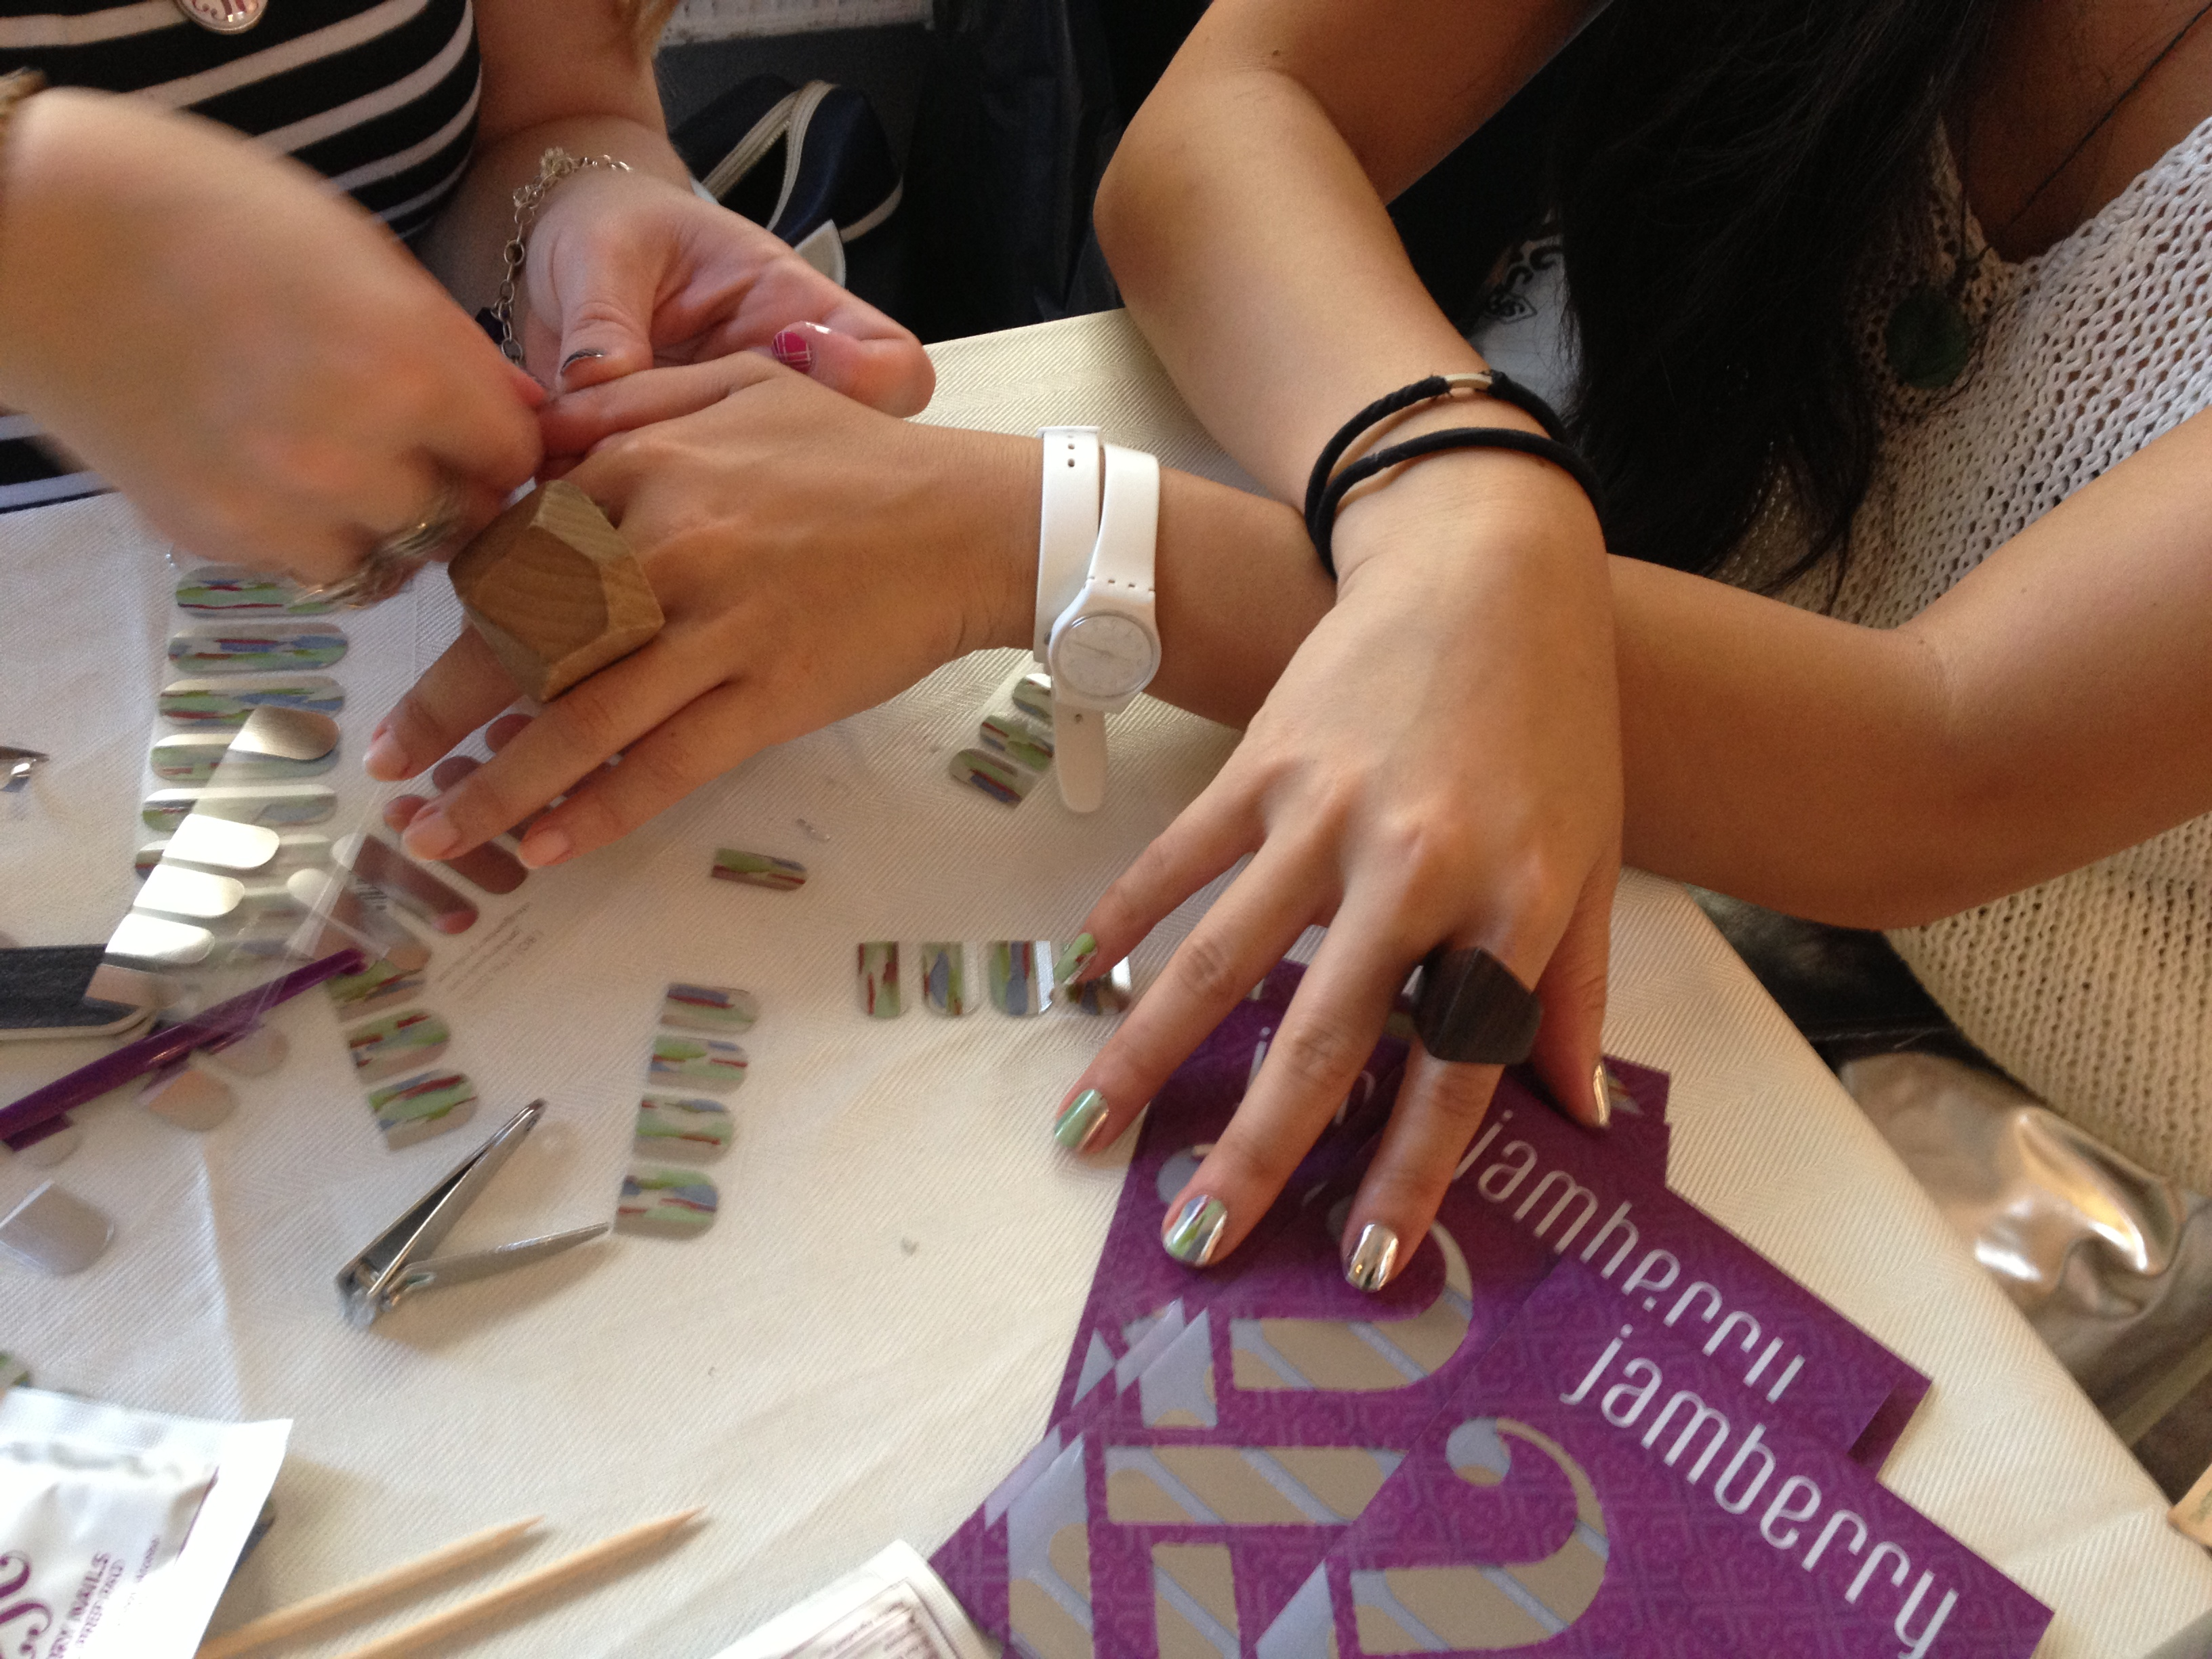 Jamberry created nail art based on one of Ann Yee's designs.